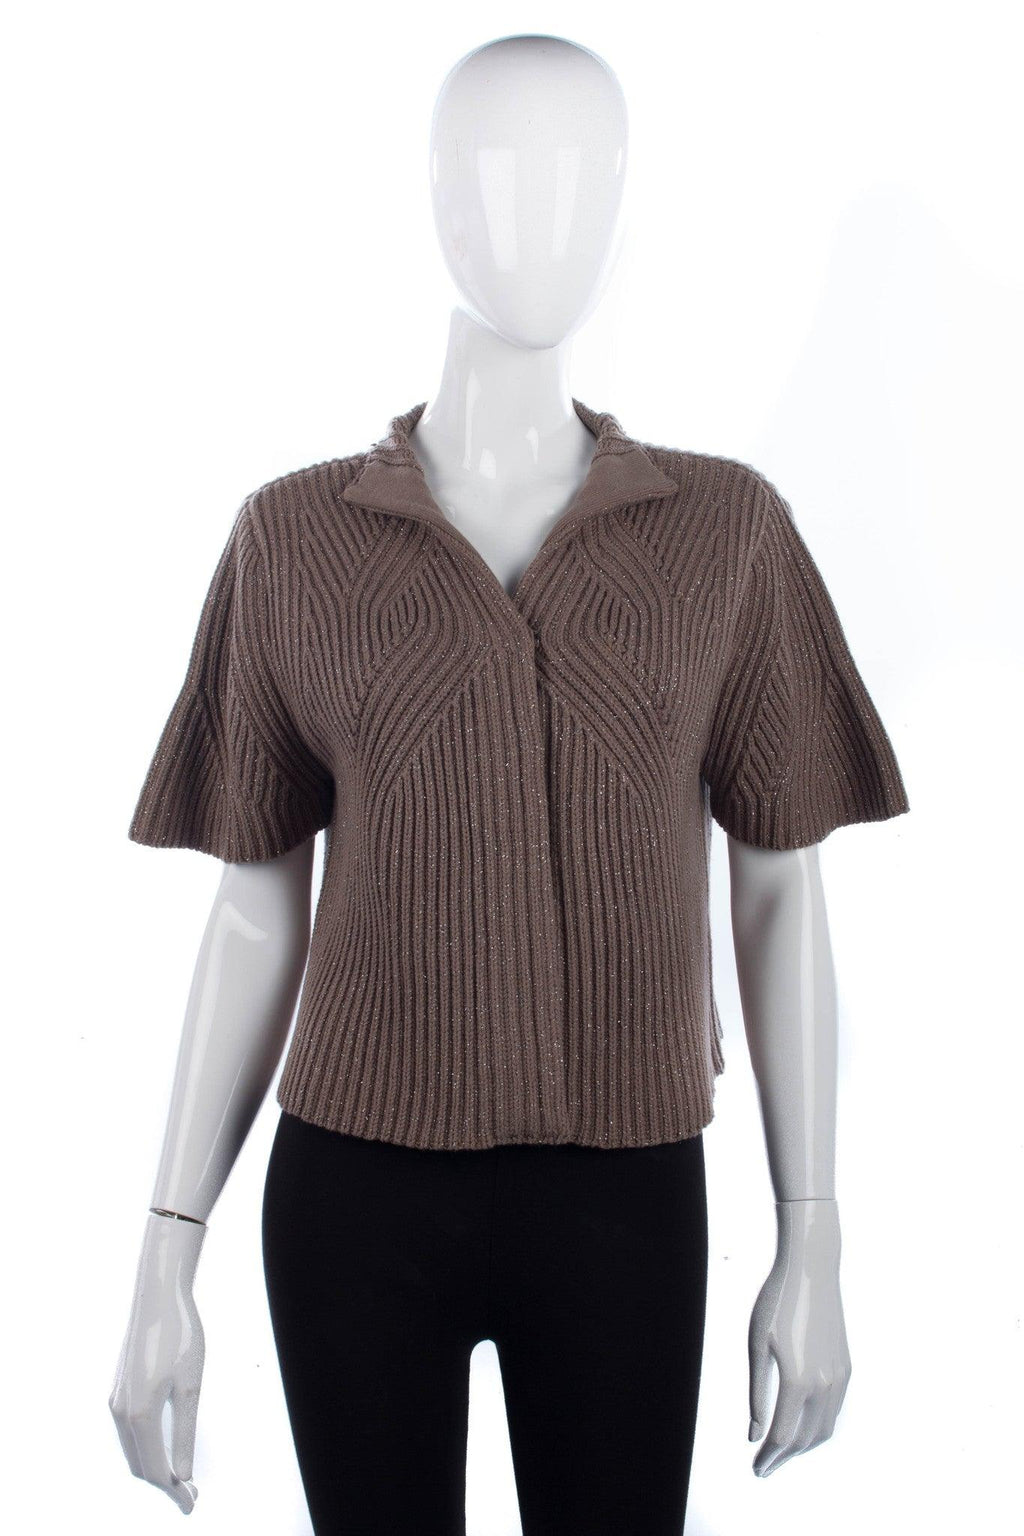 Margit brandt taupe cardigan with glitter details size 12